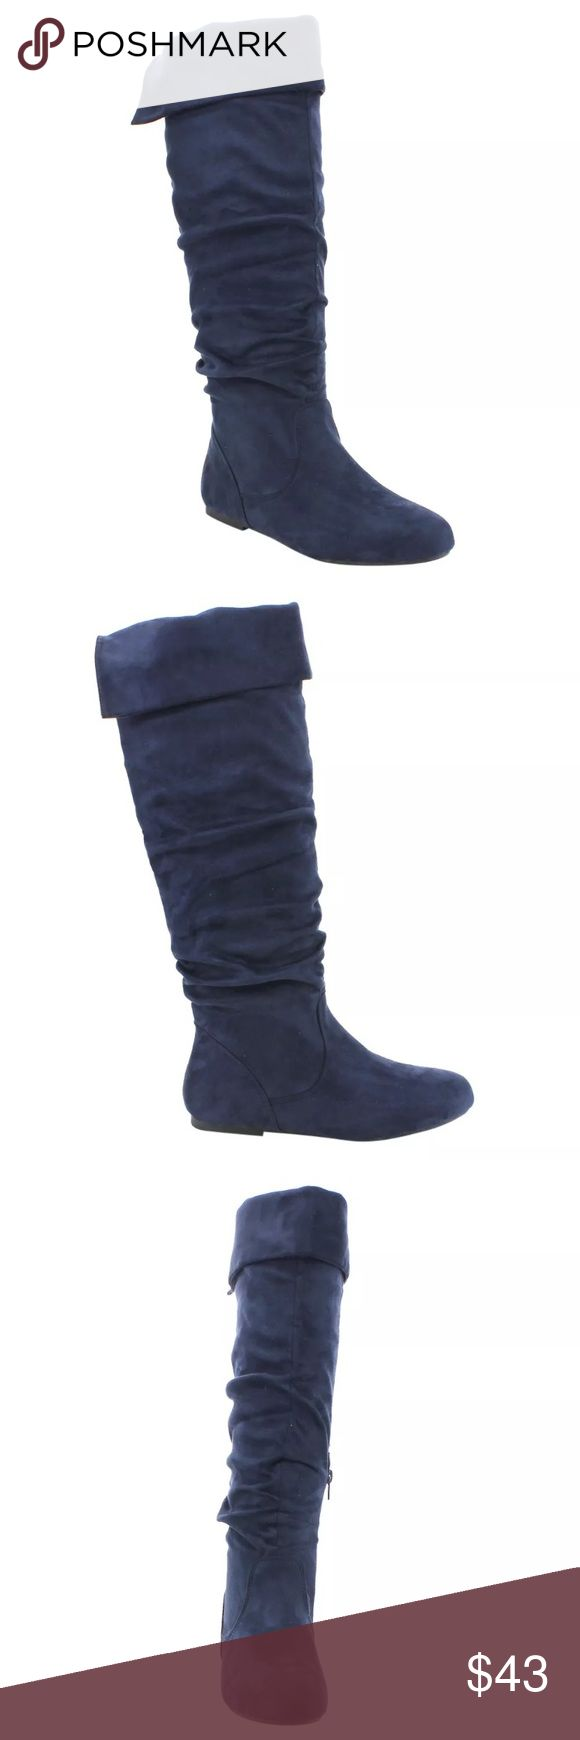 List! Navy Slouchy Suede Knee Boots! NEW! Vegan leather suede. Slouchy fit with cuffed top. Partial inside zip. Shaft height 18.75 inches tall. Shaft circumference 15.5 inches. Heel height 0.25 inches. Boutique Shoes Over the Knee Boots